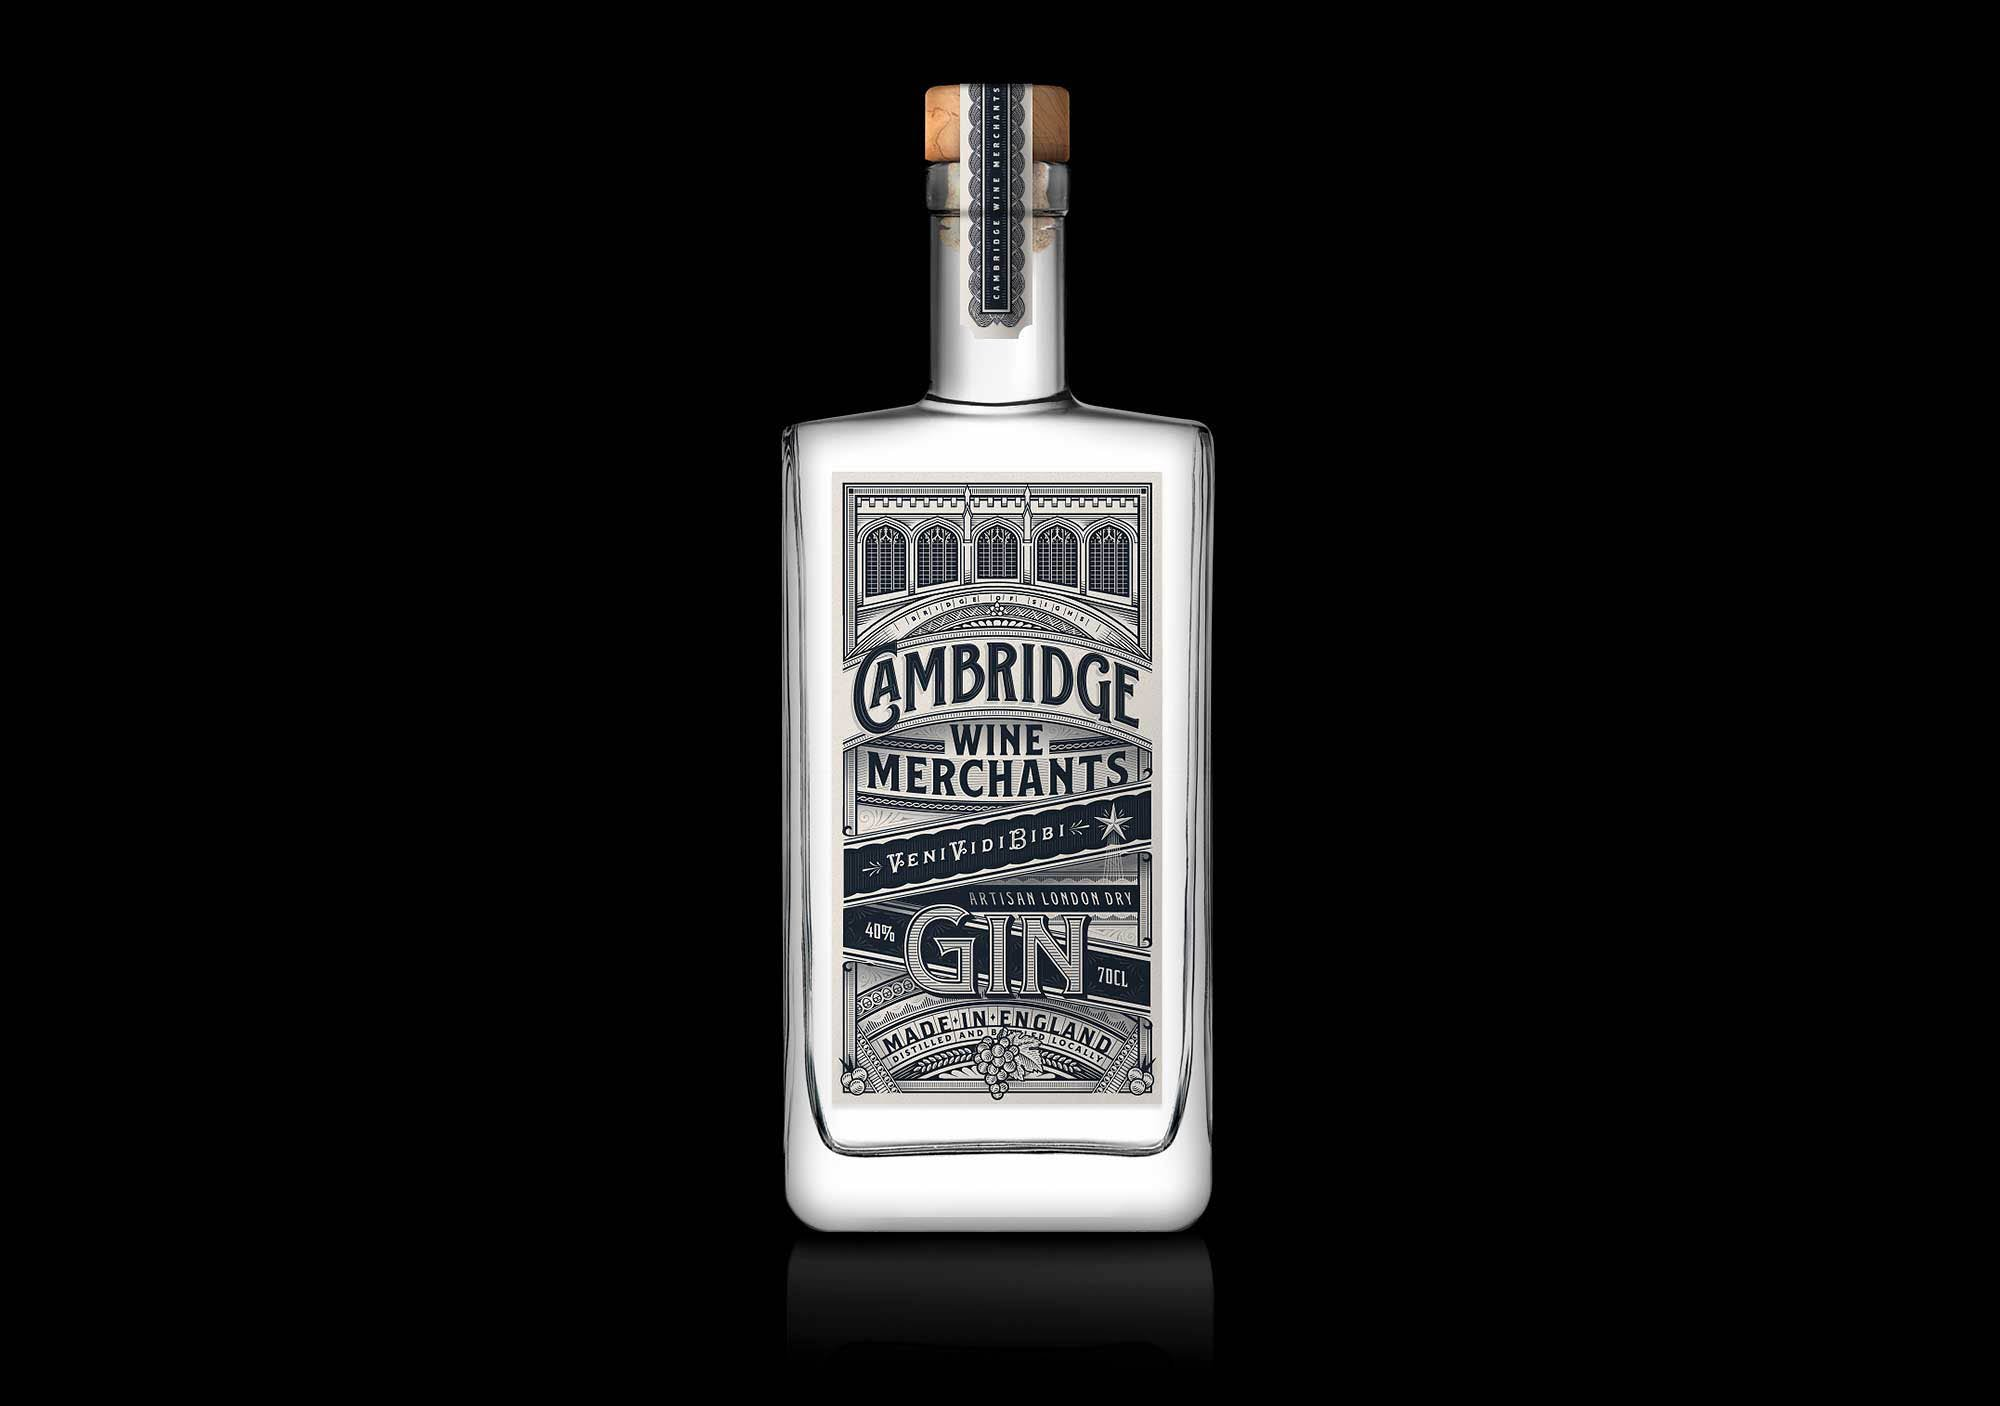 cambridge gin oveja remi